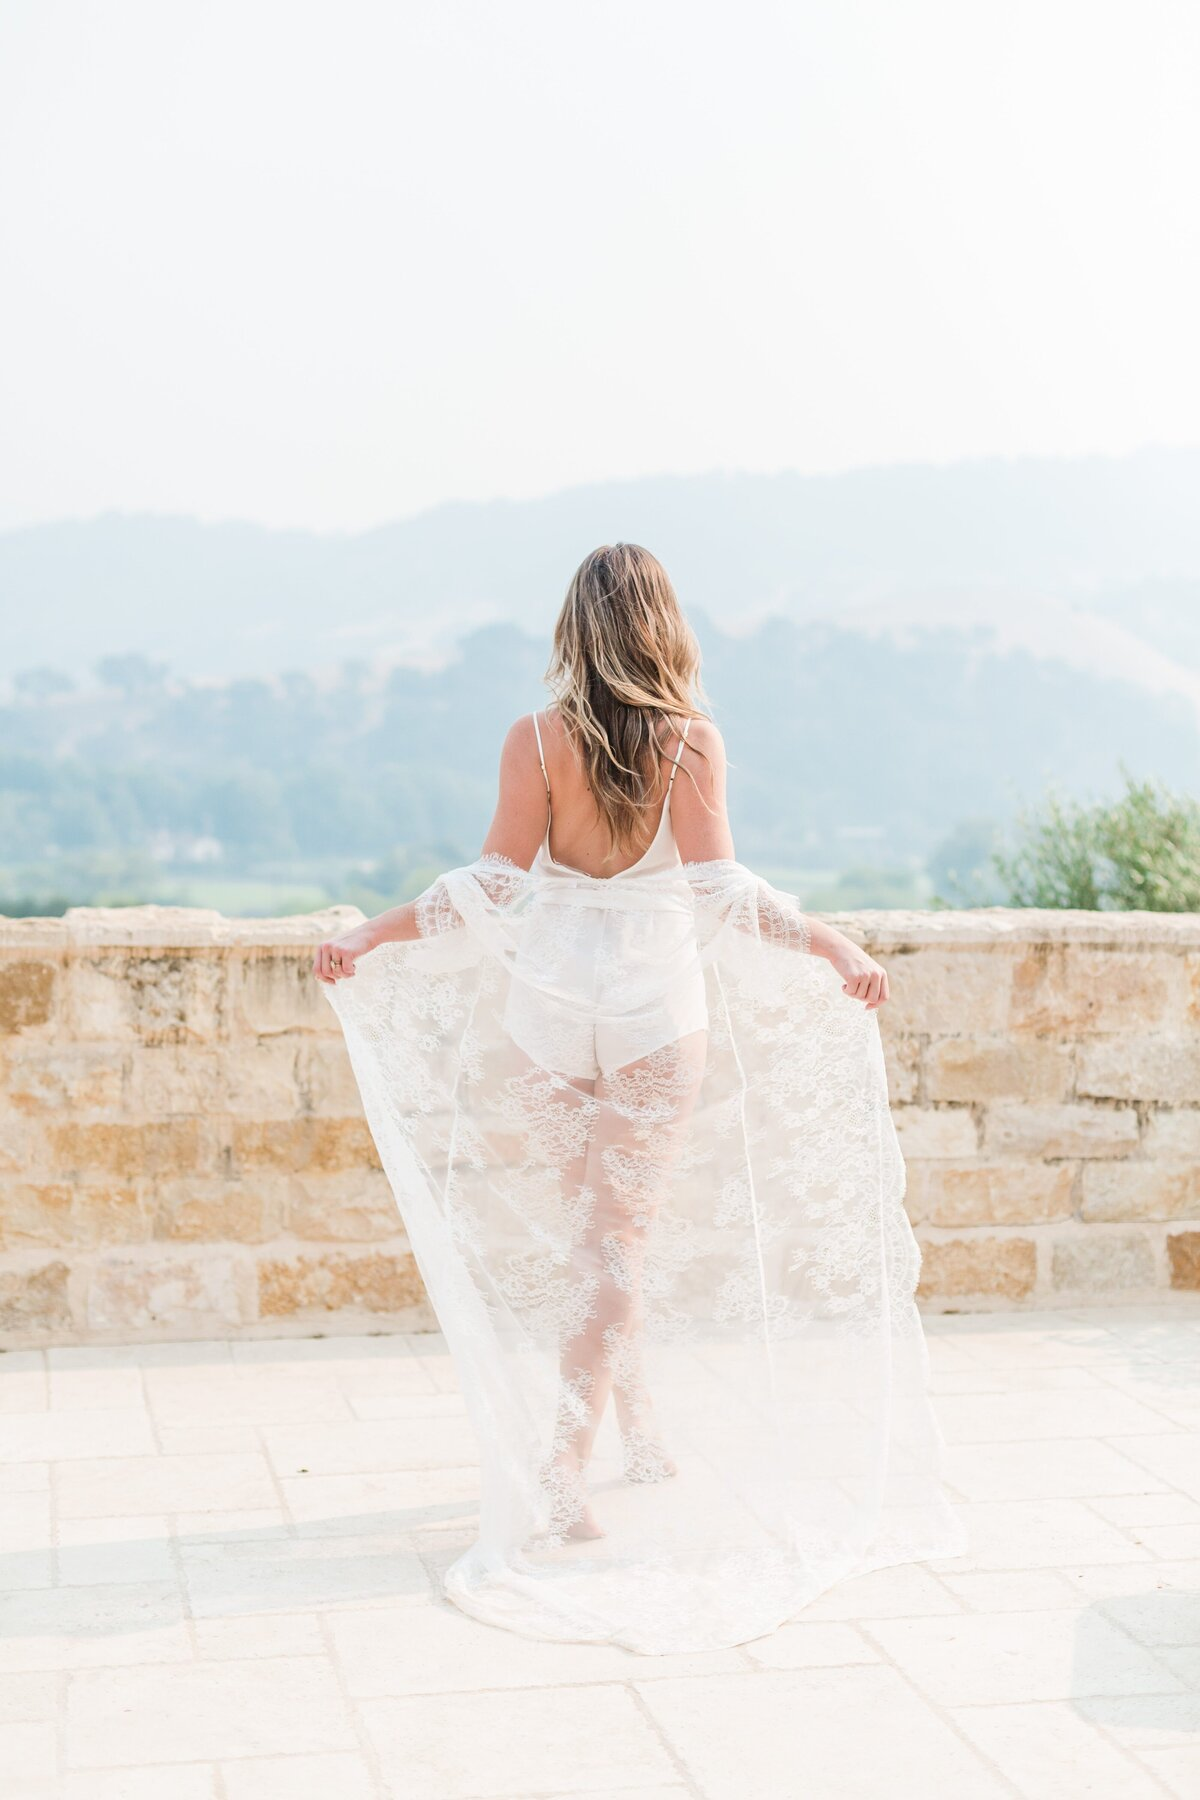 Kelli-Bee-Photography-Blog-Sunstone-Winery-Villa-Styled-Wedding-0005